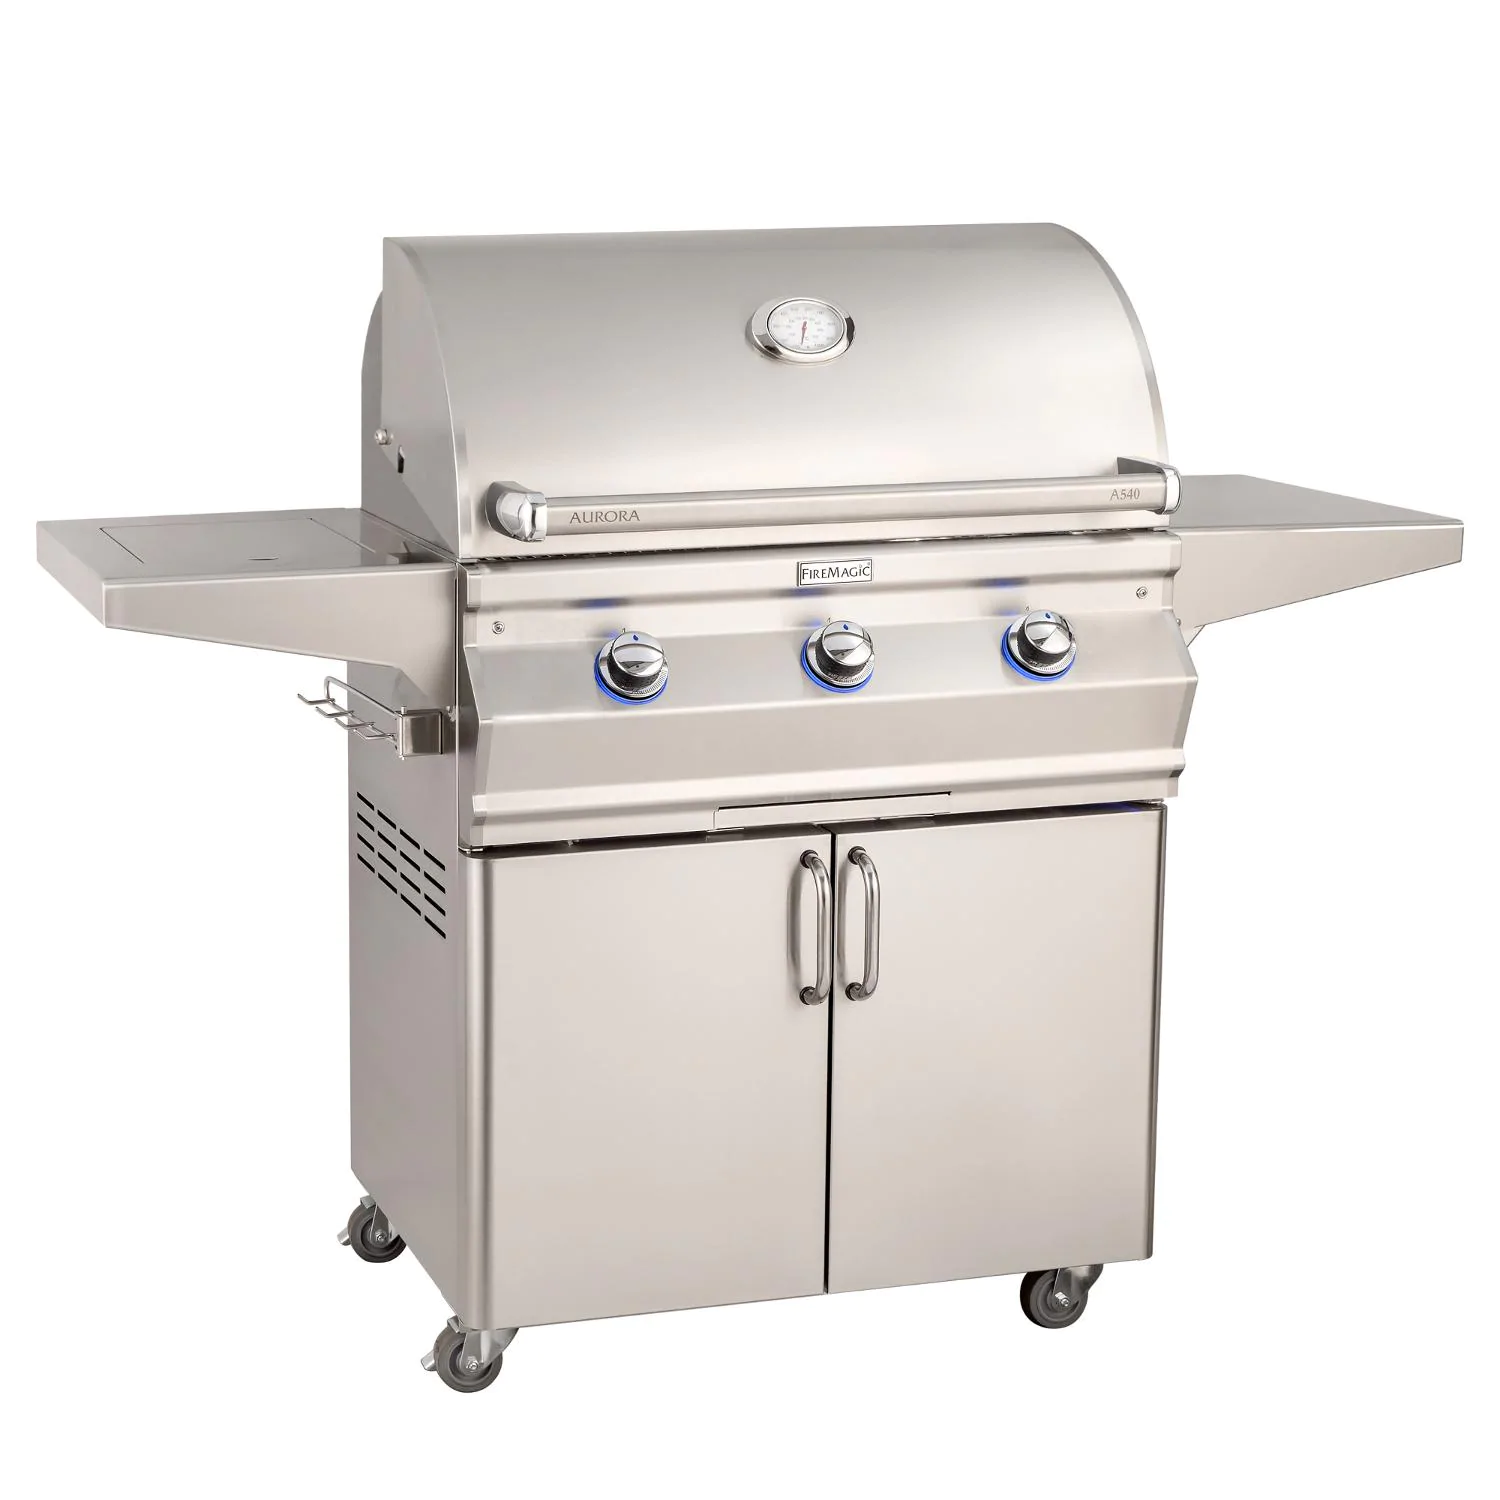 """Fire Magic A540S-7EAN-62 Aurora A540S 30"""" Freestanding Natural Gas Grill With Side Burner  Analog Thermometer"""